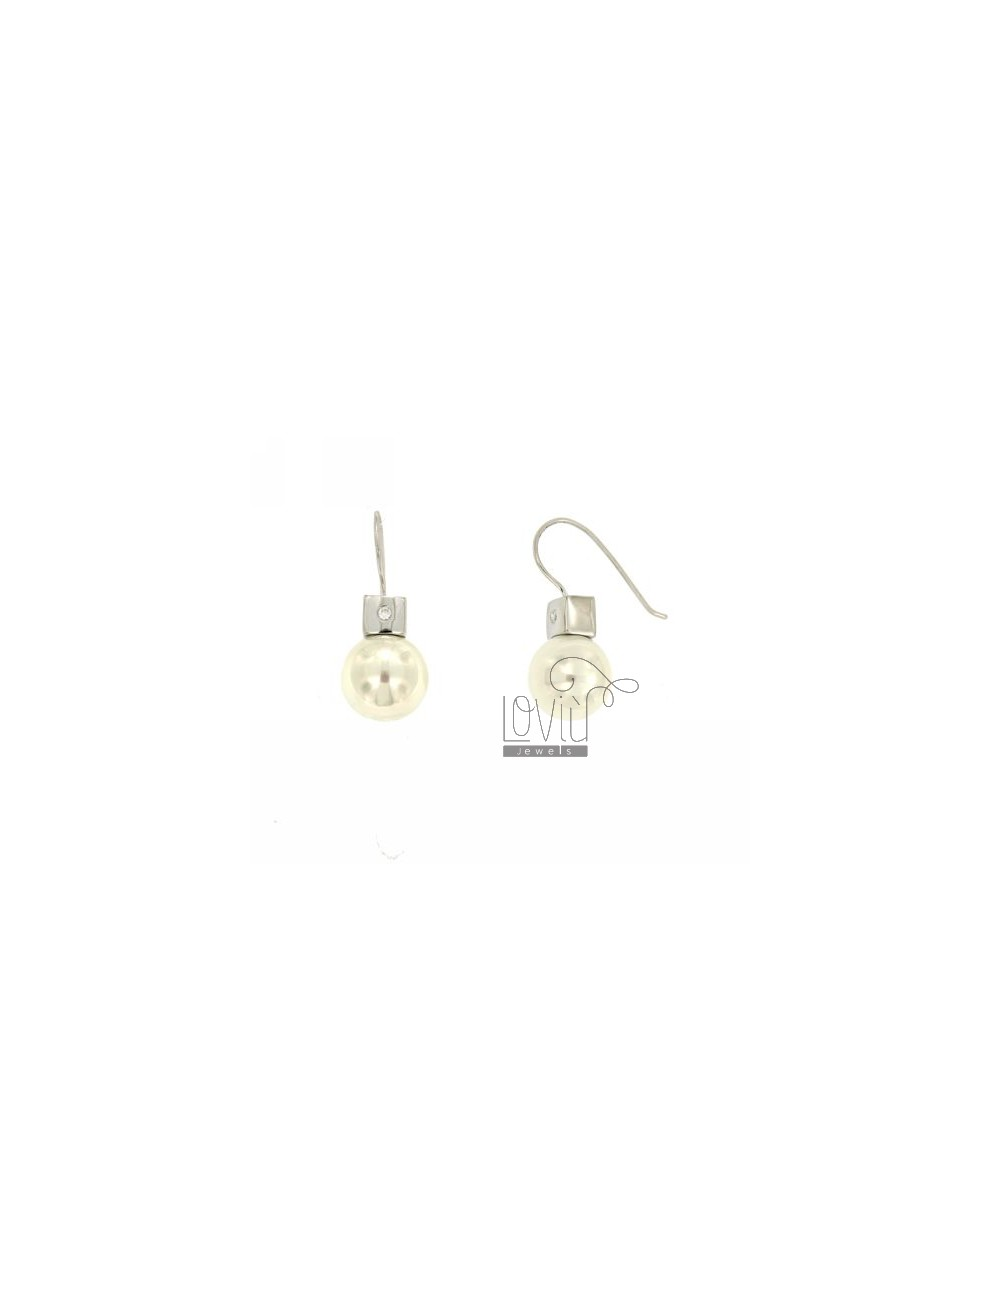 EARRINGS PEARL 12 MM SILVER TIT 925 ‰ AND ZIRCONIA